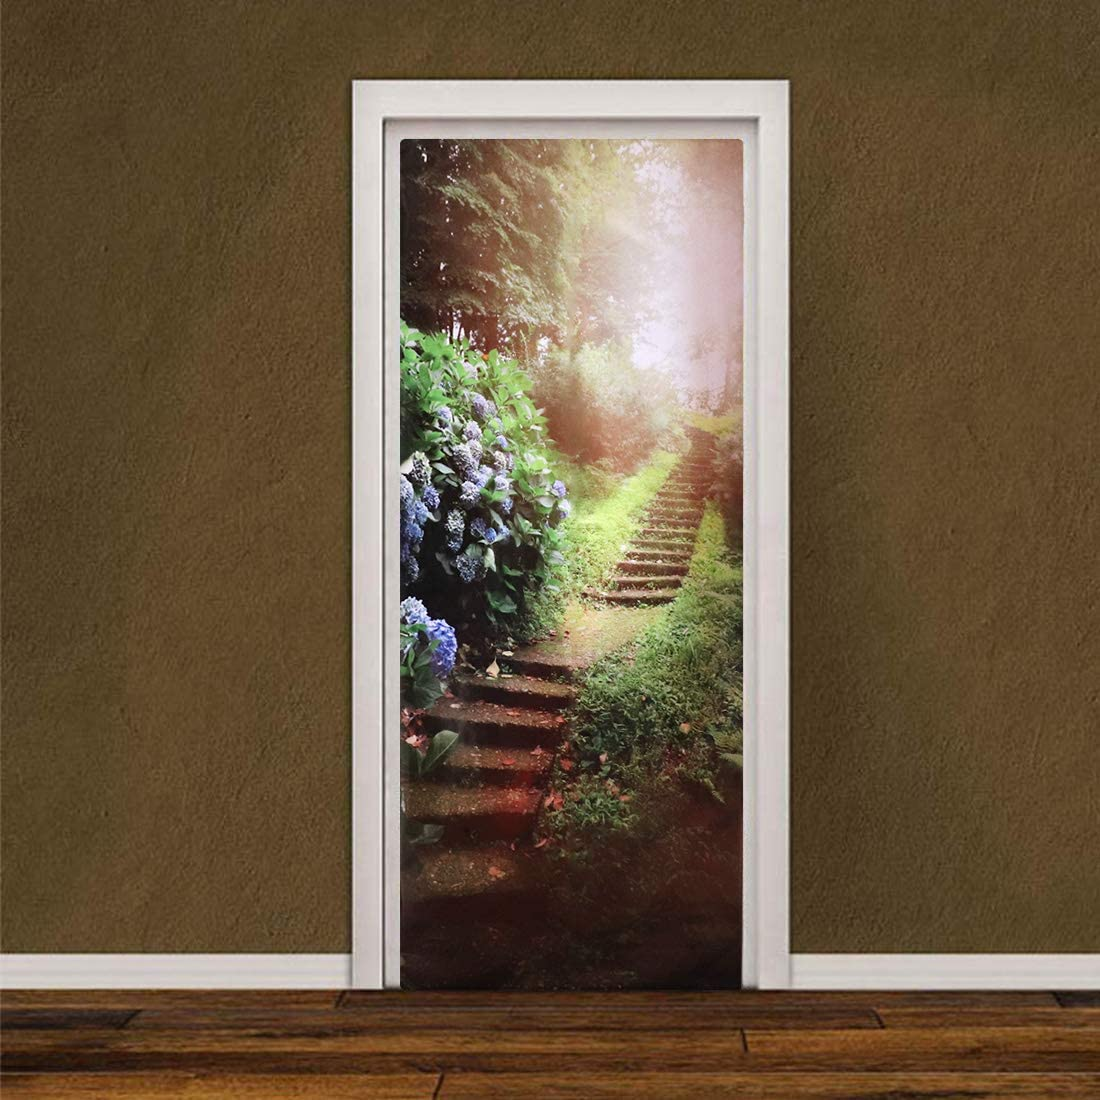 3D Door Stickers Landscape Decor Forest Sunshine Door Mural Art Sticker Wallpaper Wall Sticker Removable Self Adhesive Wall Window Decal for Home Office Decor 30.31 x 78.74 Inch